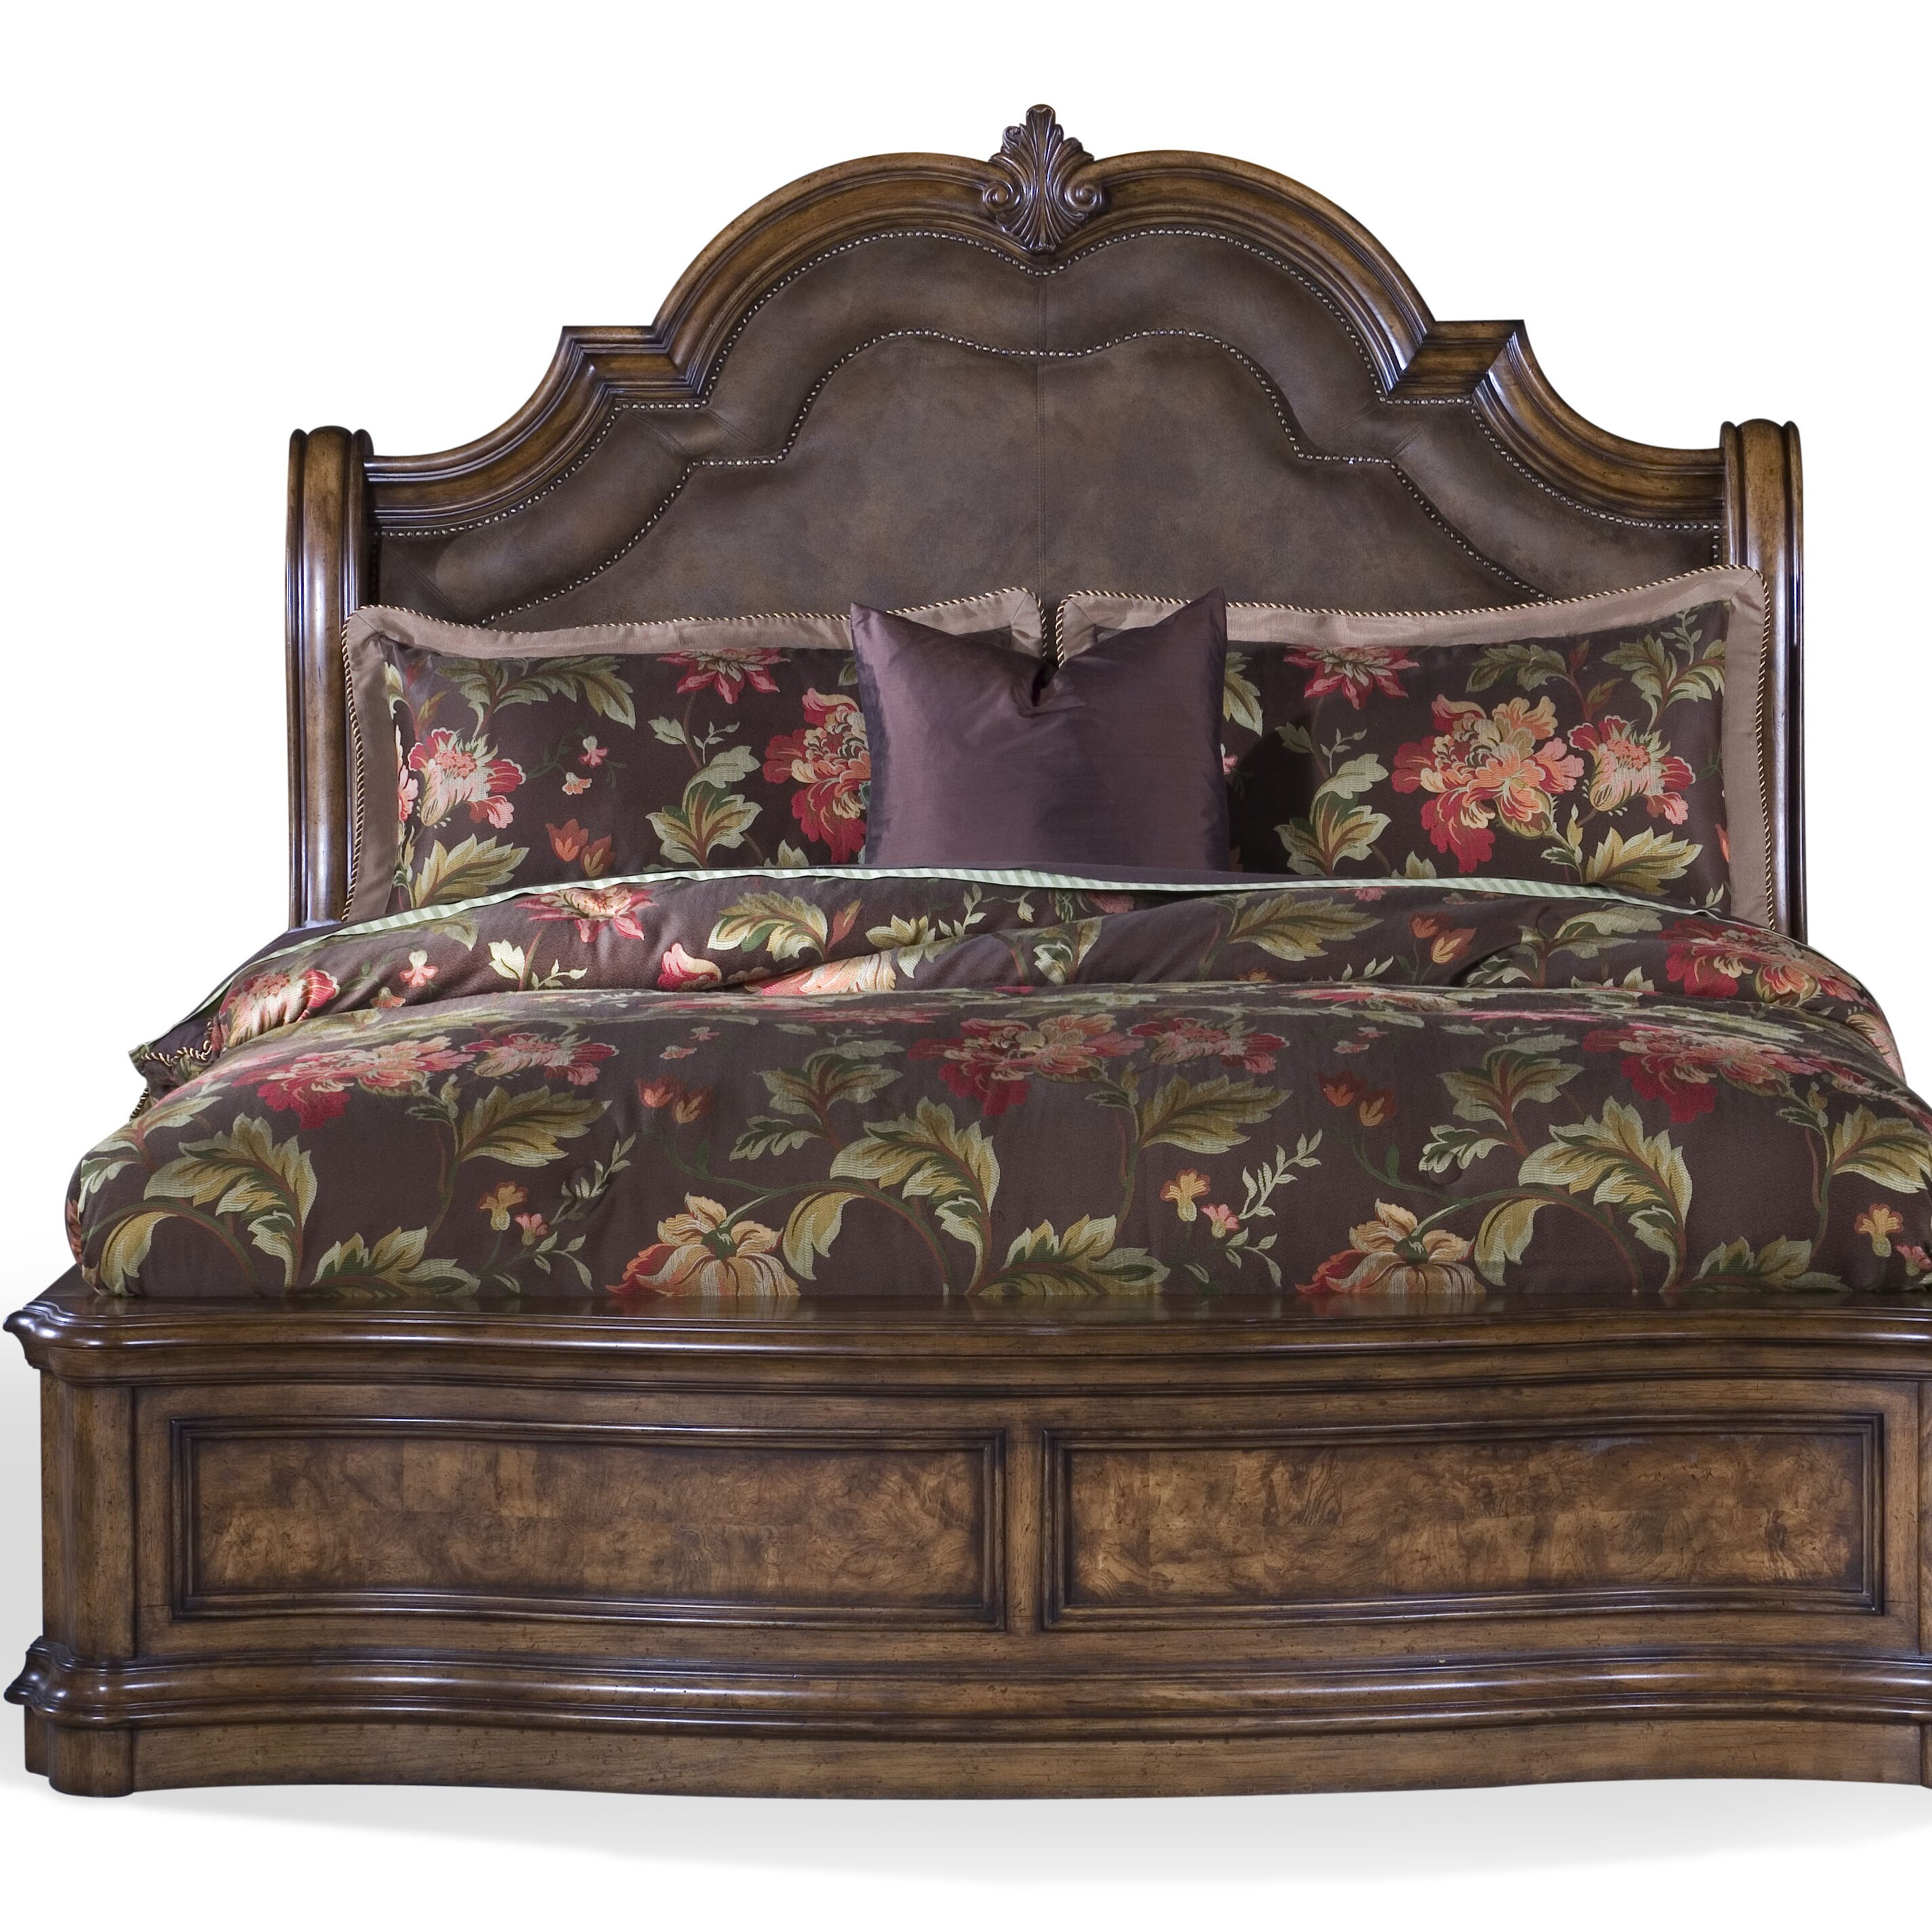 San Mateo Bedroom Furniture Pulaski San Mateo Upholstered Panel Bed Reviews Wayfair